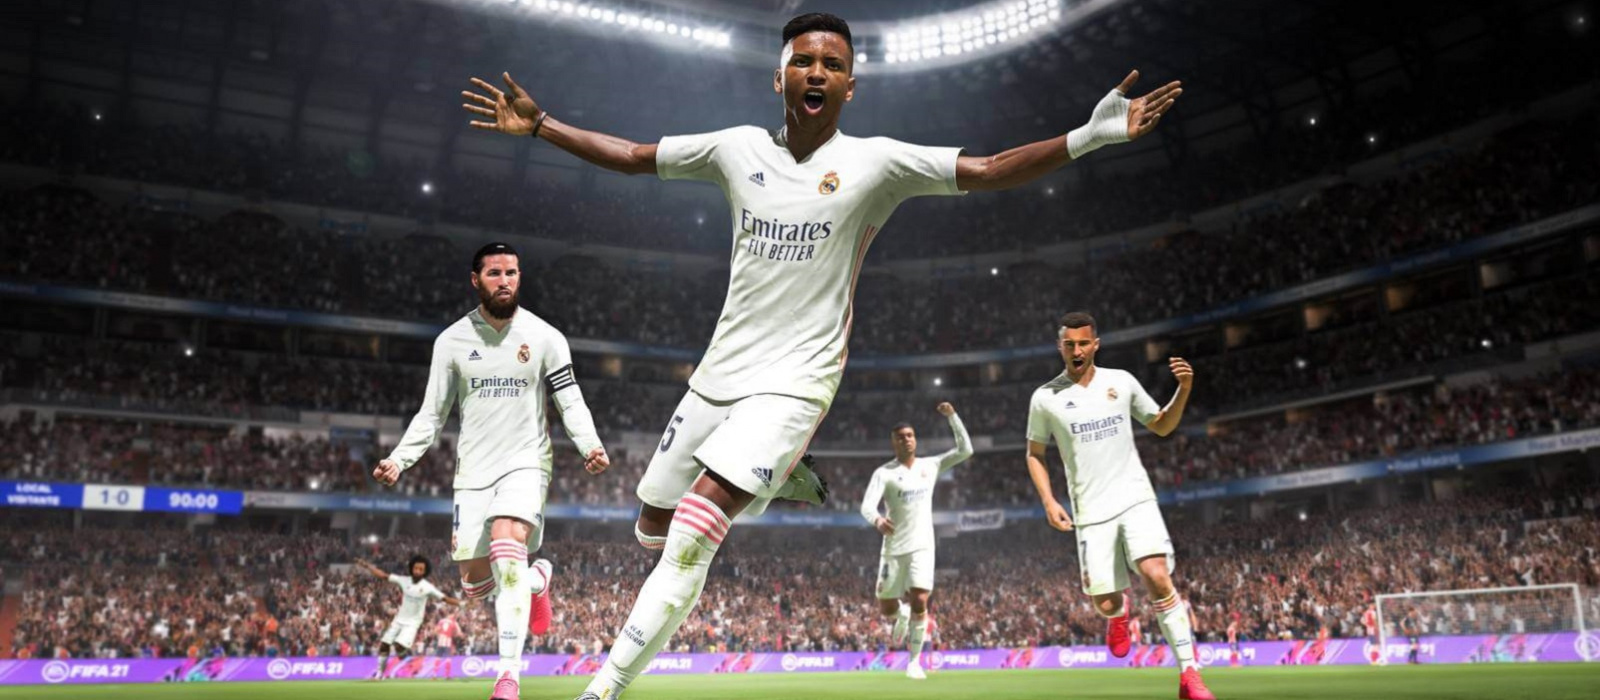 FIFA 22 Best Young Players - Prospective Footballer Rankings